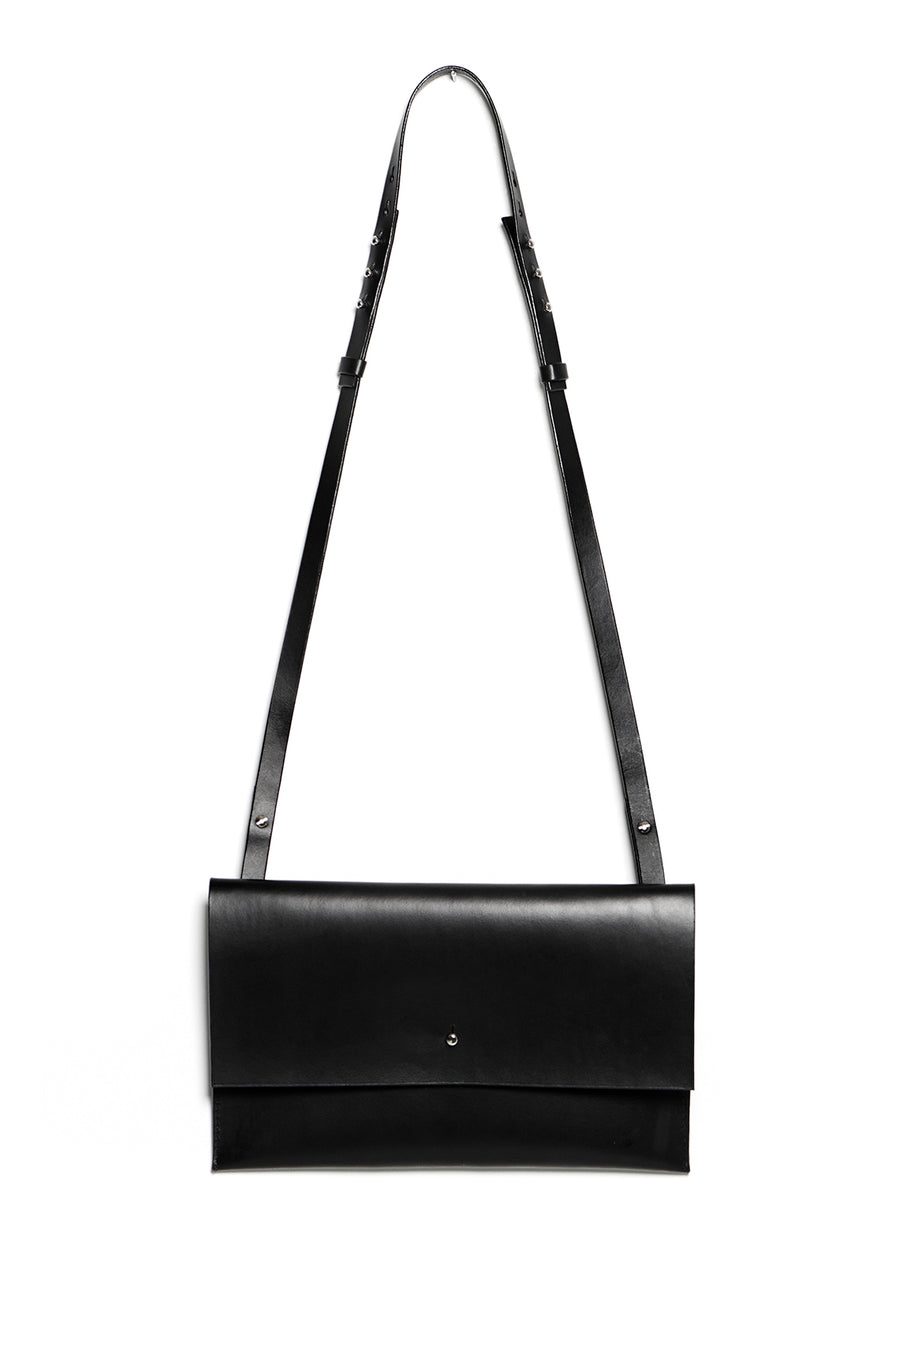 RIGMOR MEGA clutch & shoulder bag (black)